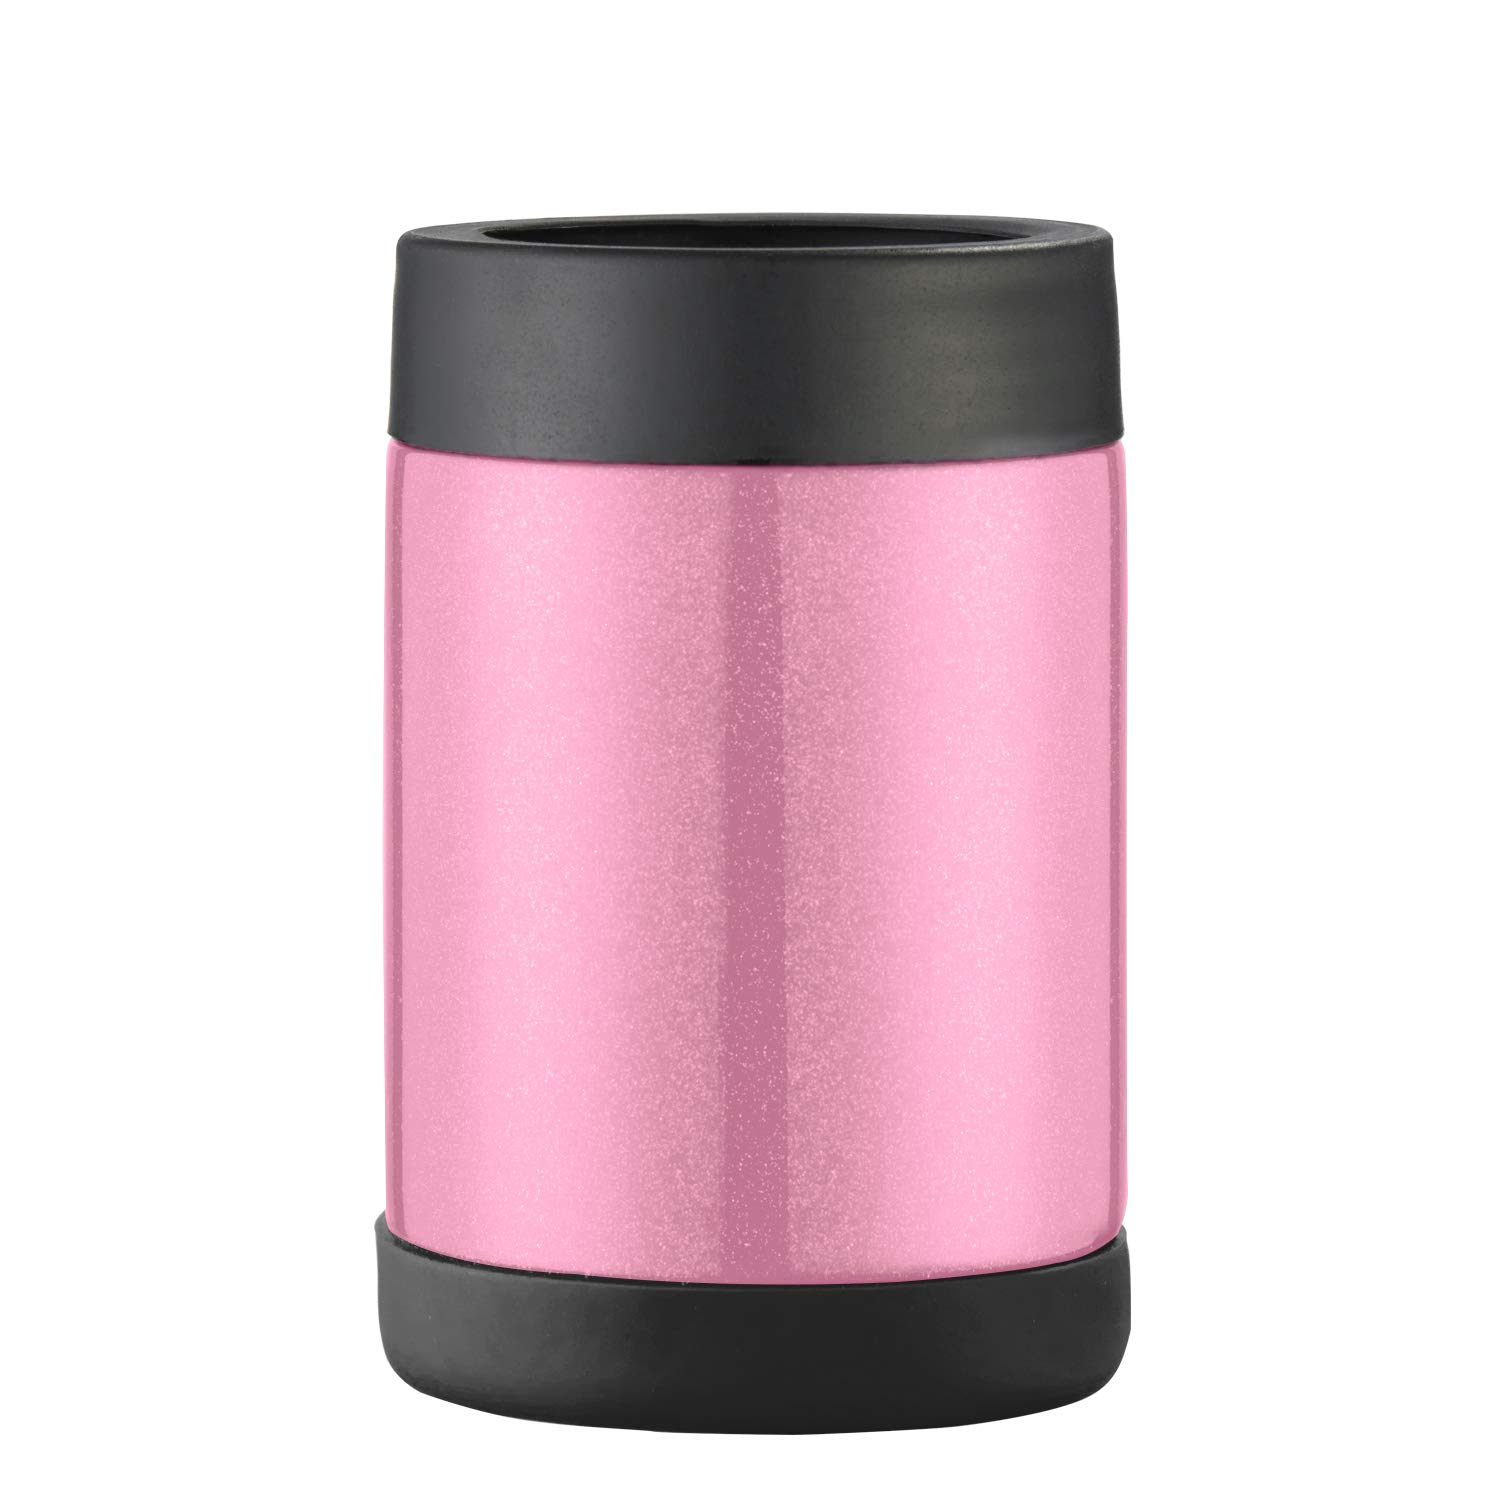 Pretfarver Stainless Steel Double Insulated Can Cooler and Beer Bottle Cooler, 12 Oz Skinny Can Holder for Drink Tumbler Beer Can -Bottle Insulators, Perfect for Tailgating and Parties BPA Free Pink